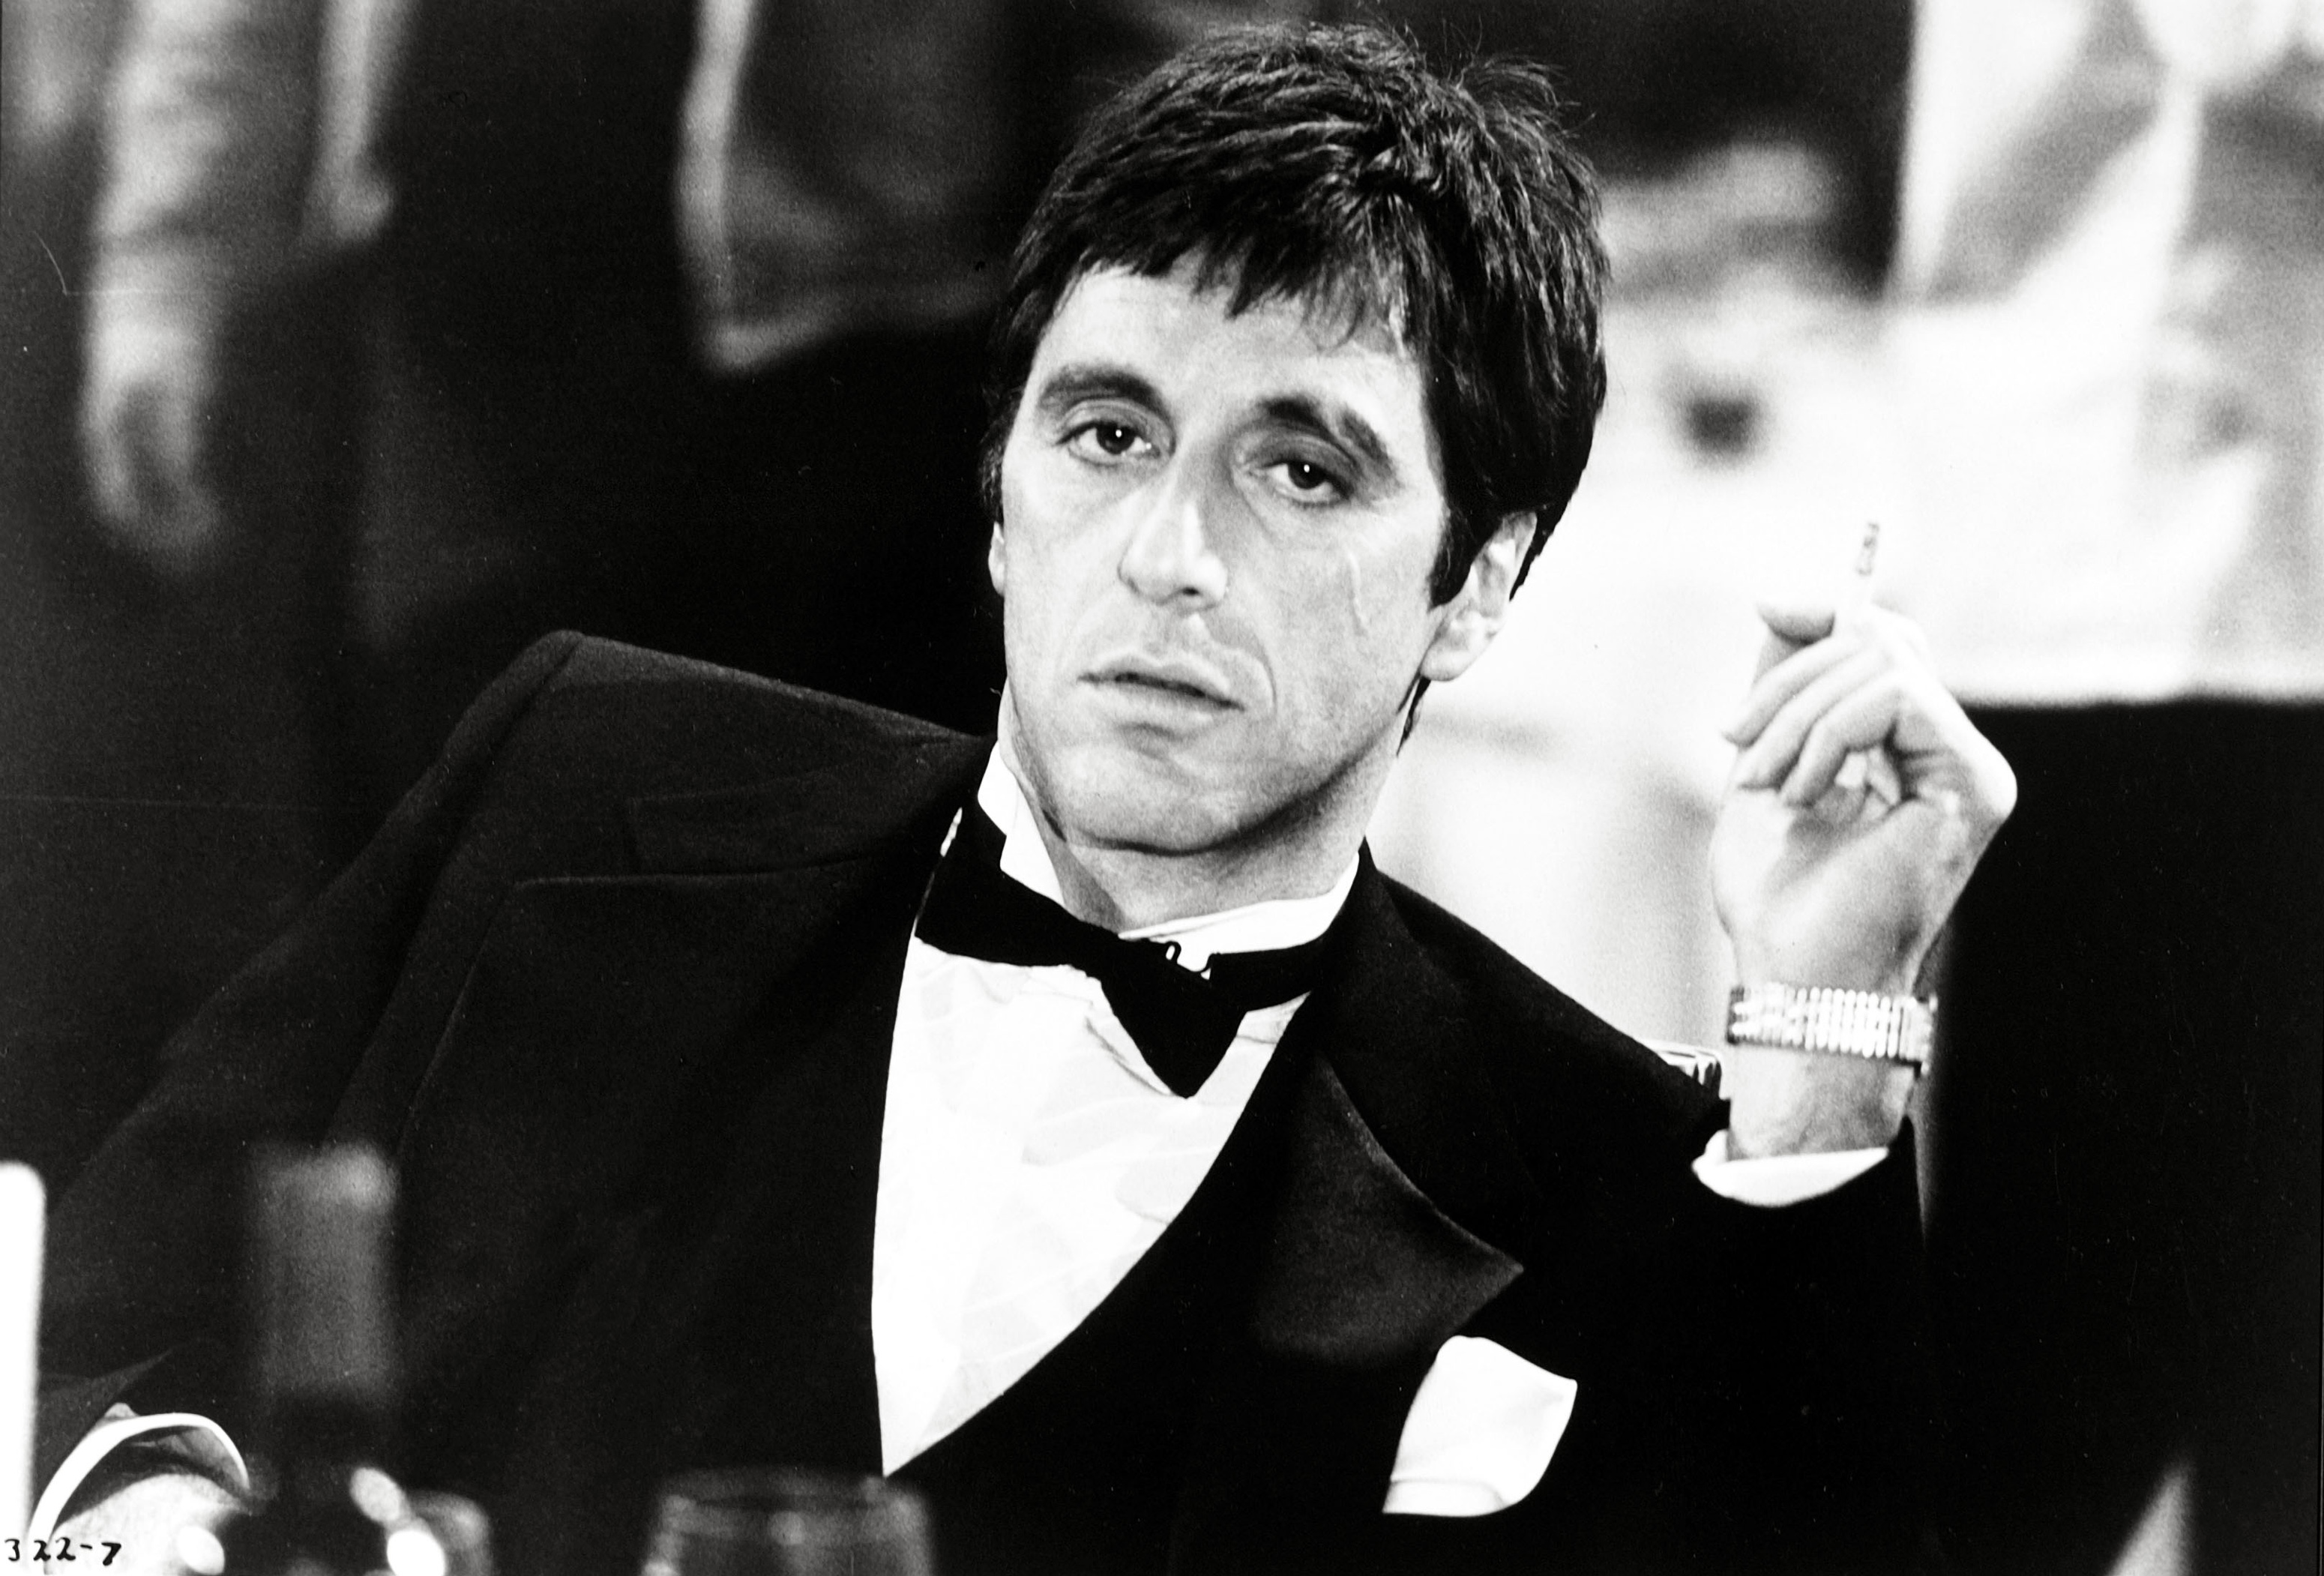 Scarface movie poster al pacino gangster drugs brian de for Occhiali al pacino scarface